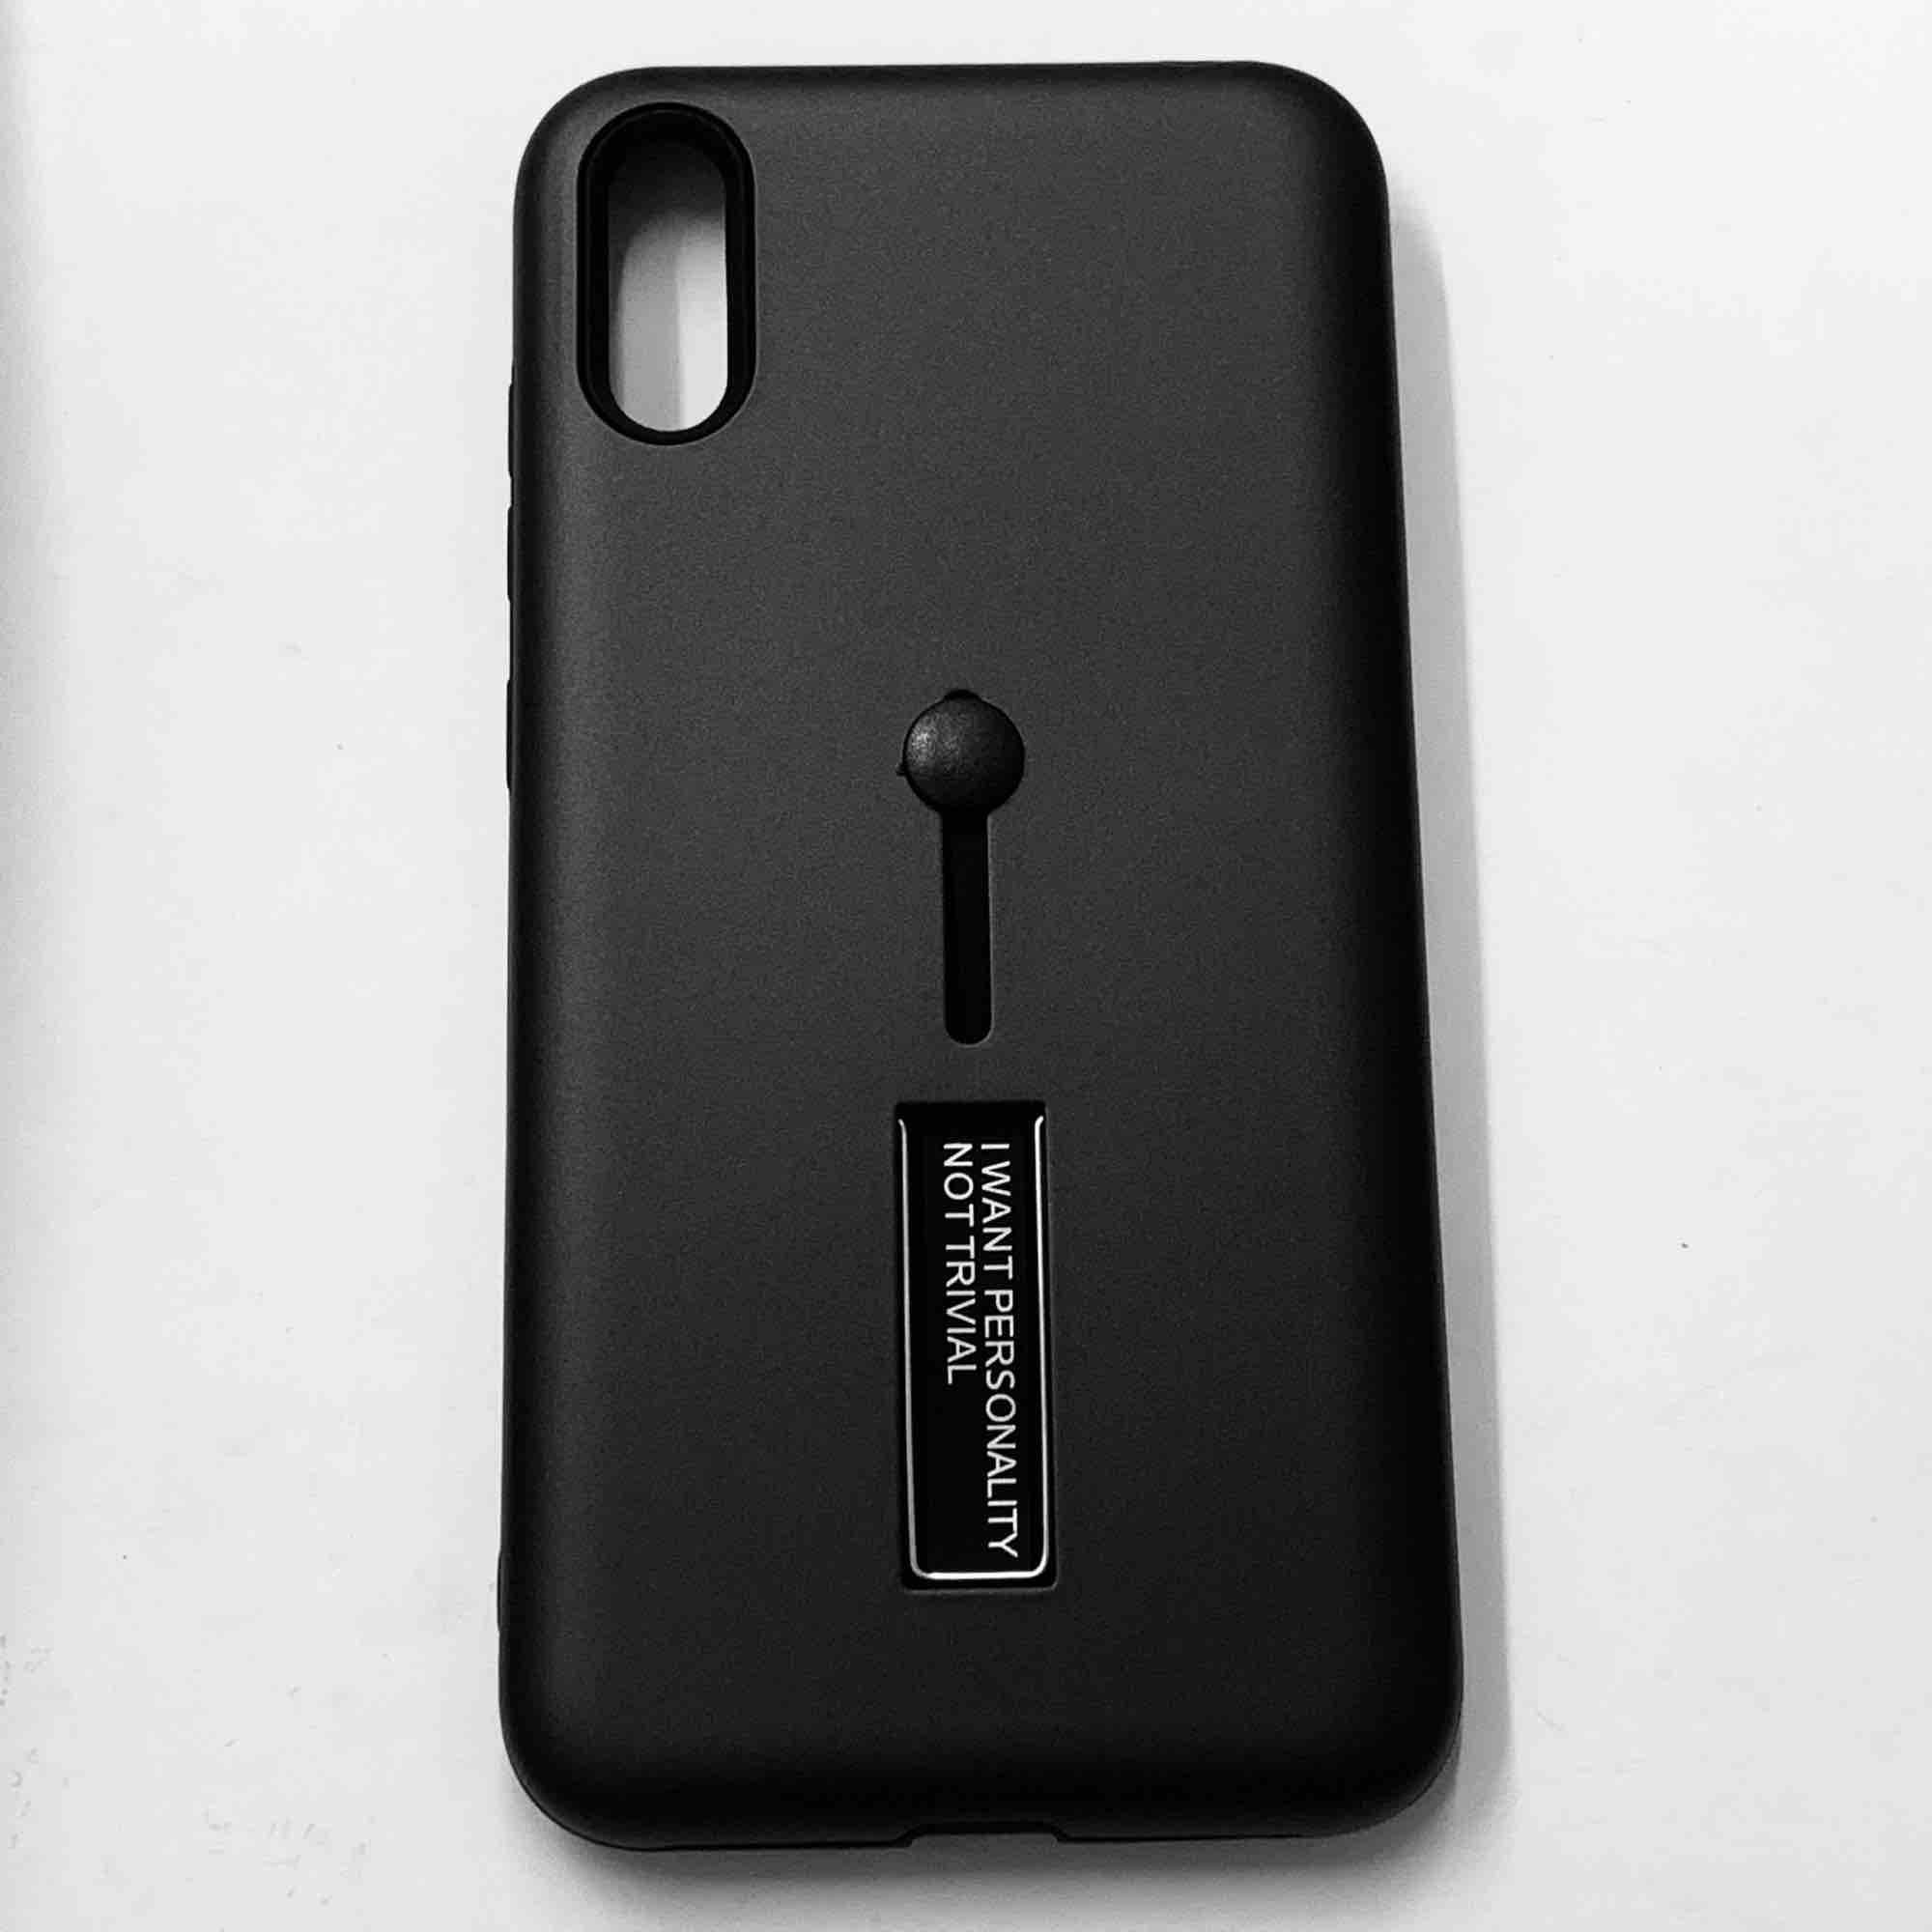 Huawei Y6pro 2019 armor case with ring stand